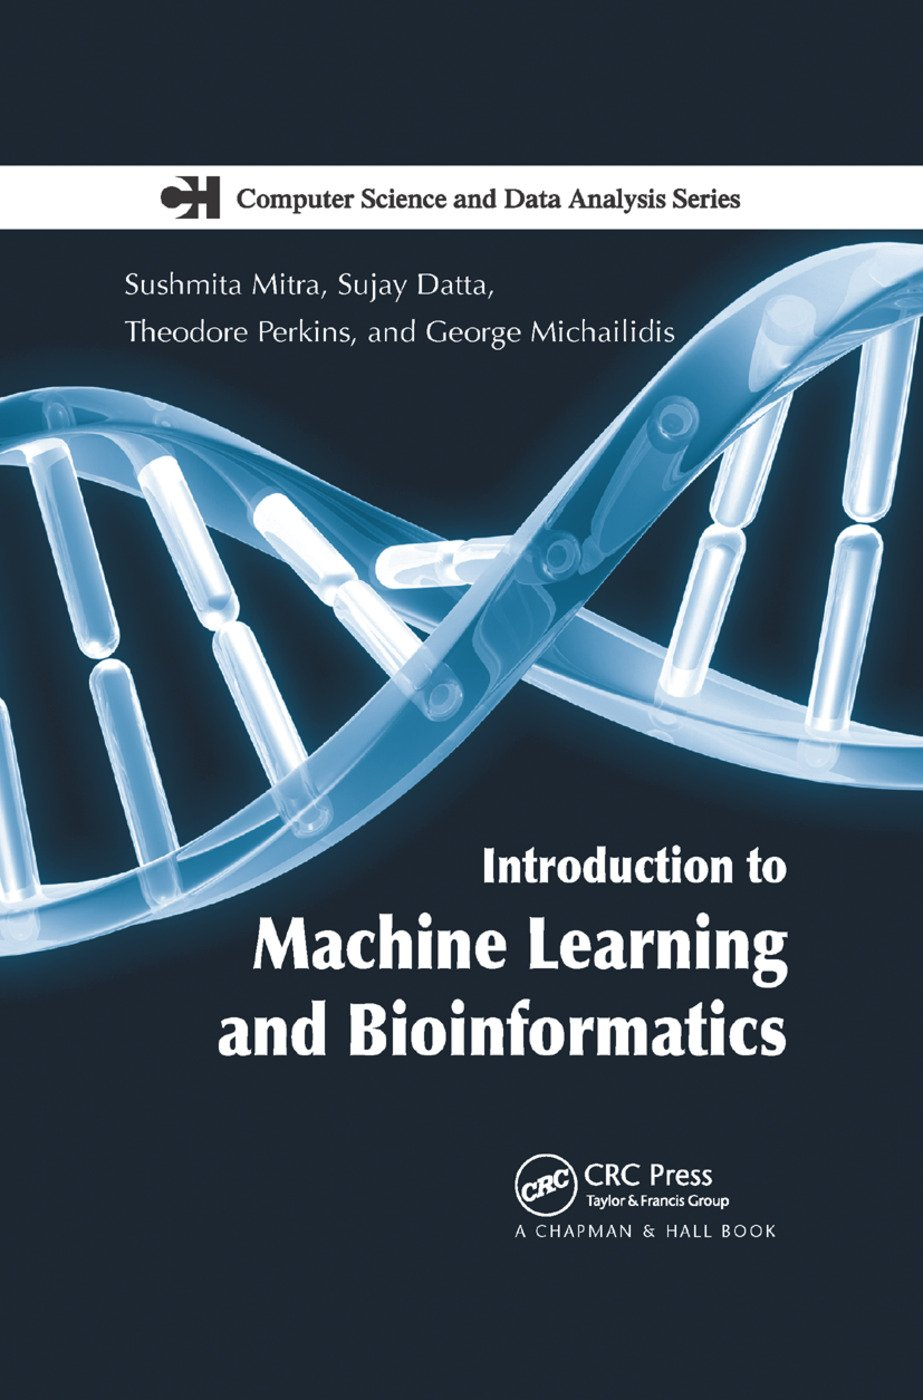 Introduction to Machine Learning and Bioinformatics